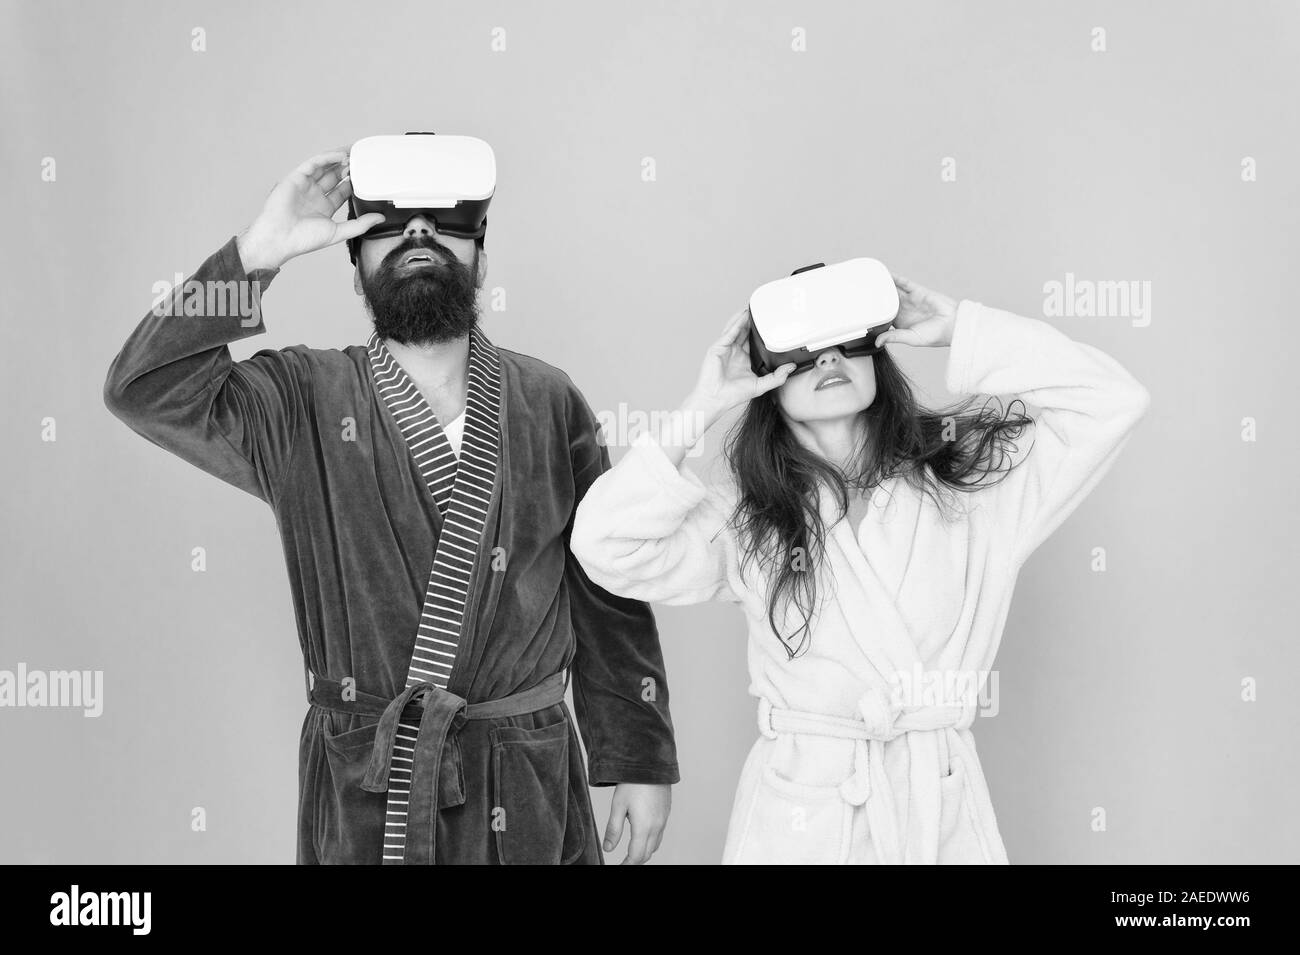 morning start with future technology. digital couple. innovation in family relations. create your reality. New world of virtual reality. family couple wear vr headset. girl and man relax in bathrobe. Stock Photo